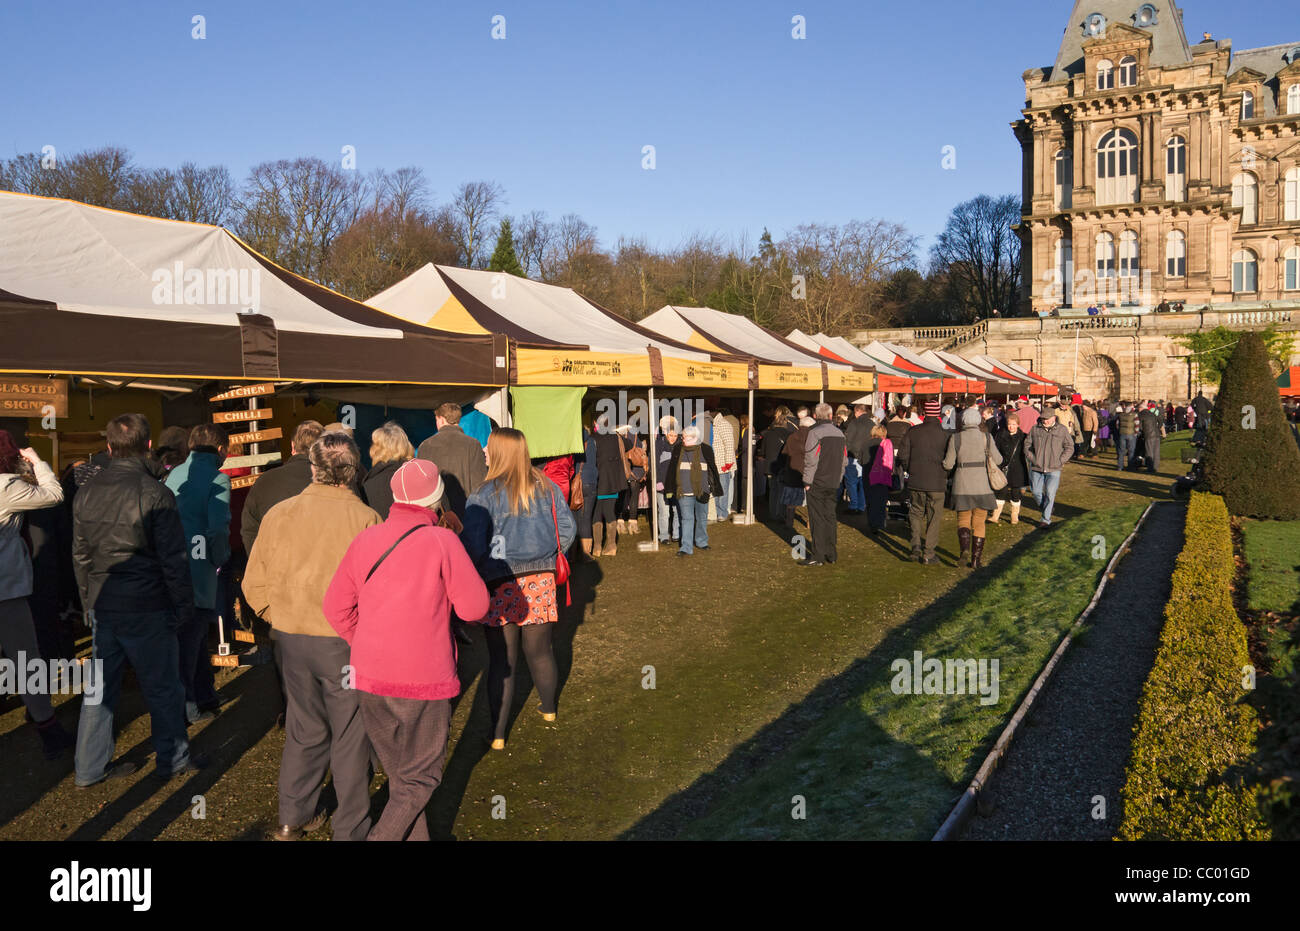 The annual Christmas and Farmer's Market at The Bowes Museum, Barnard Castle, County Durham. - Stock Image